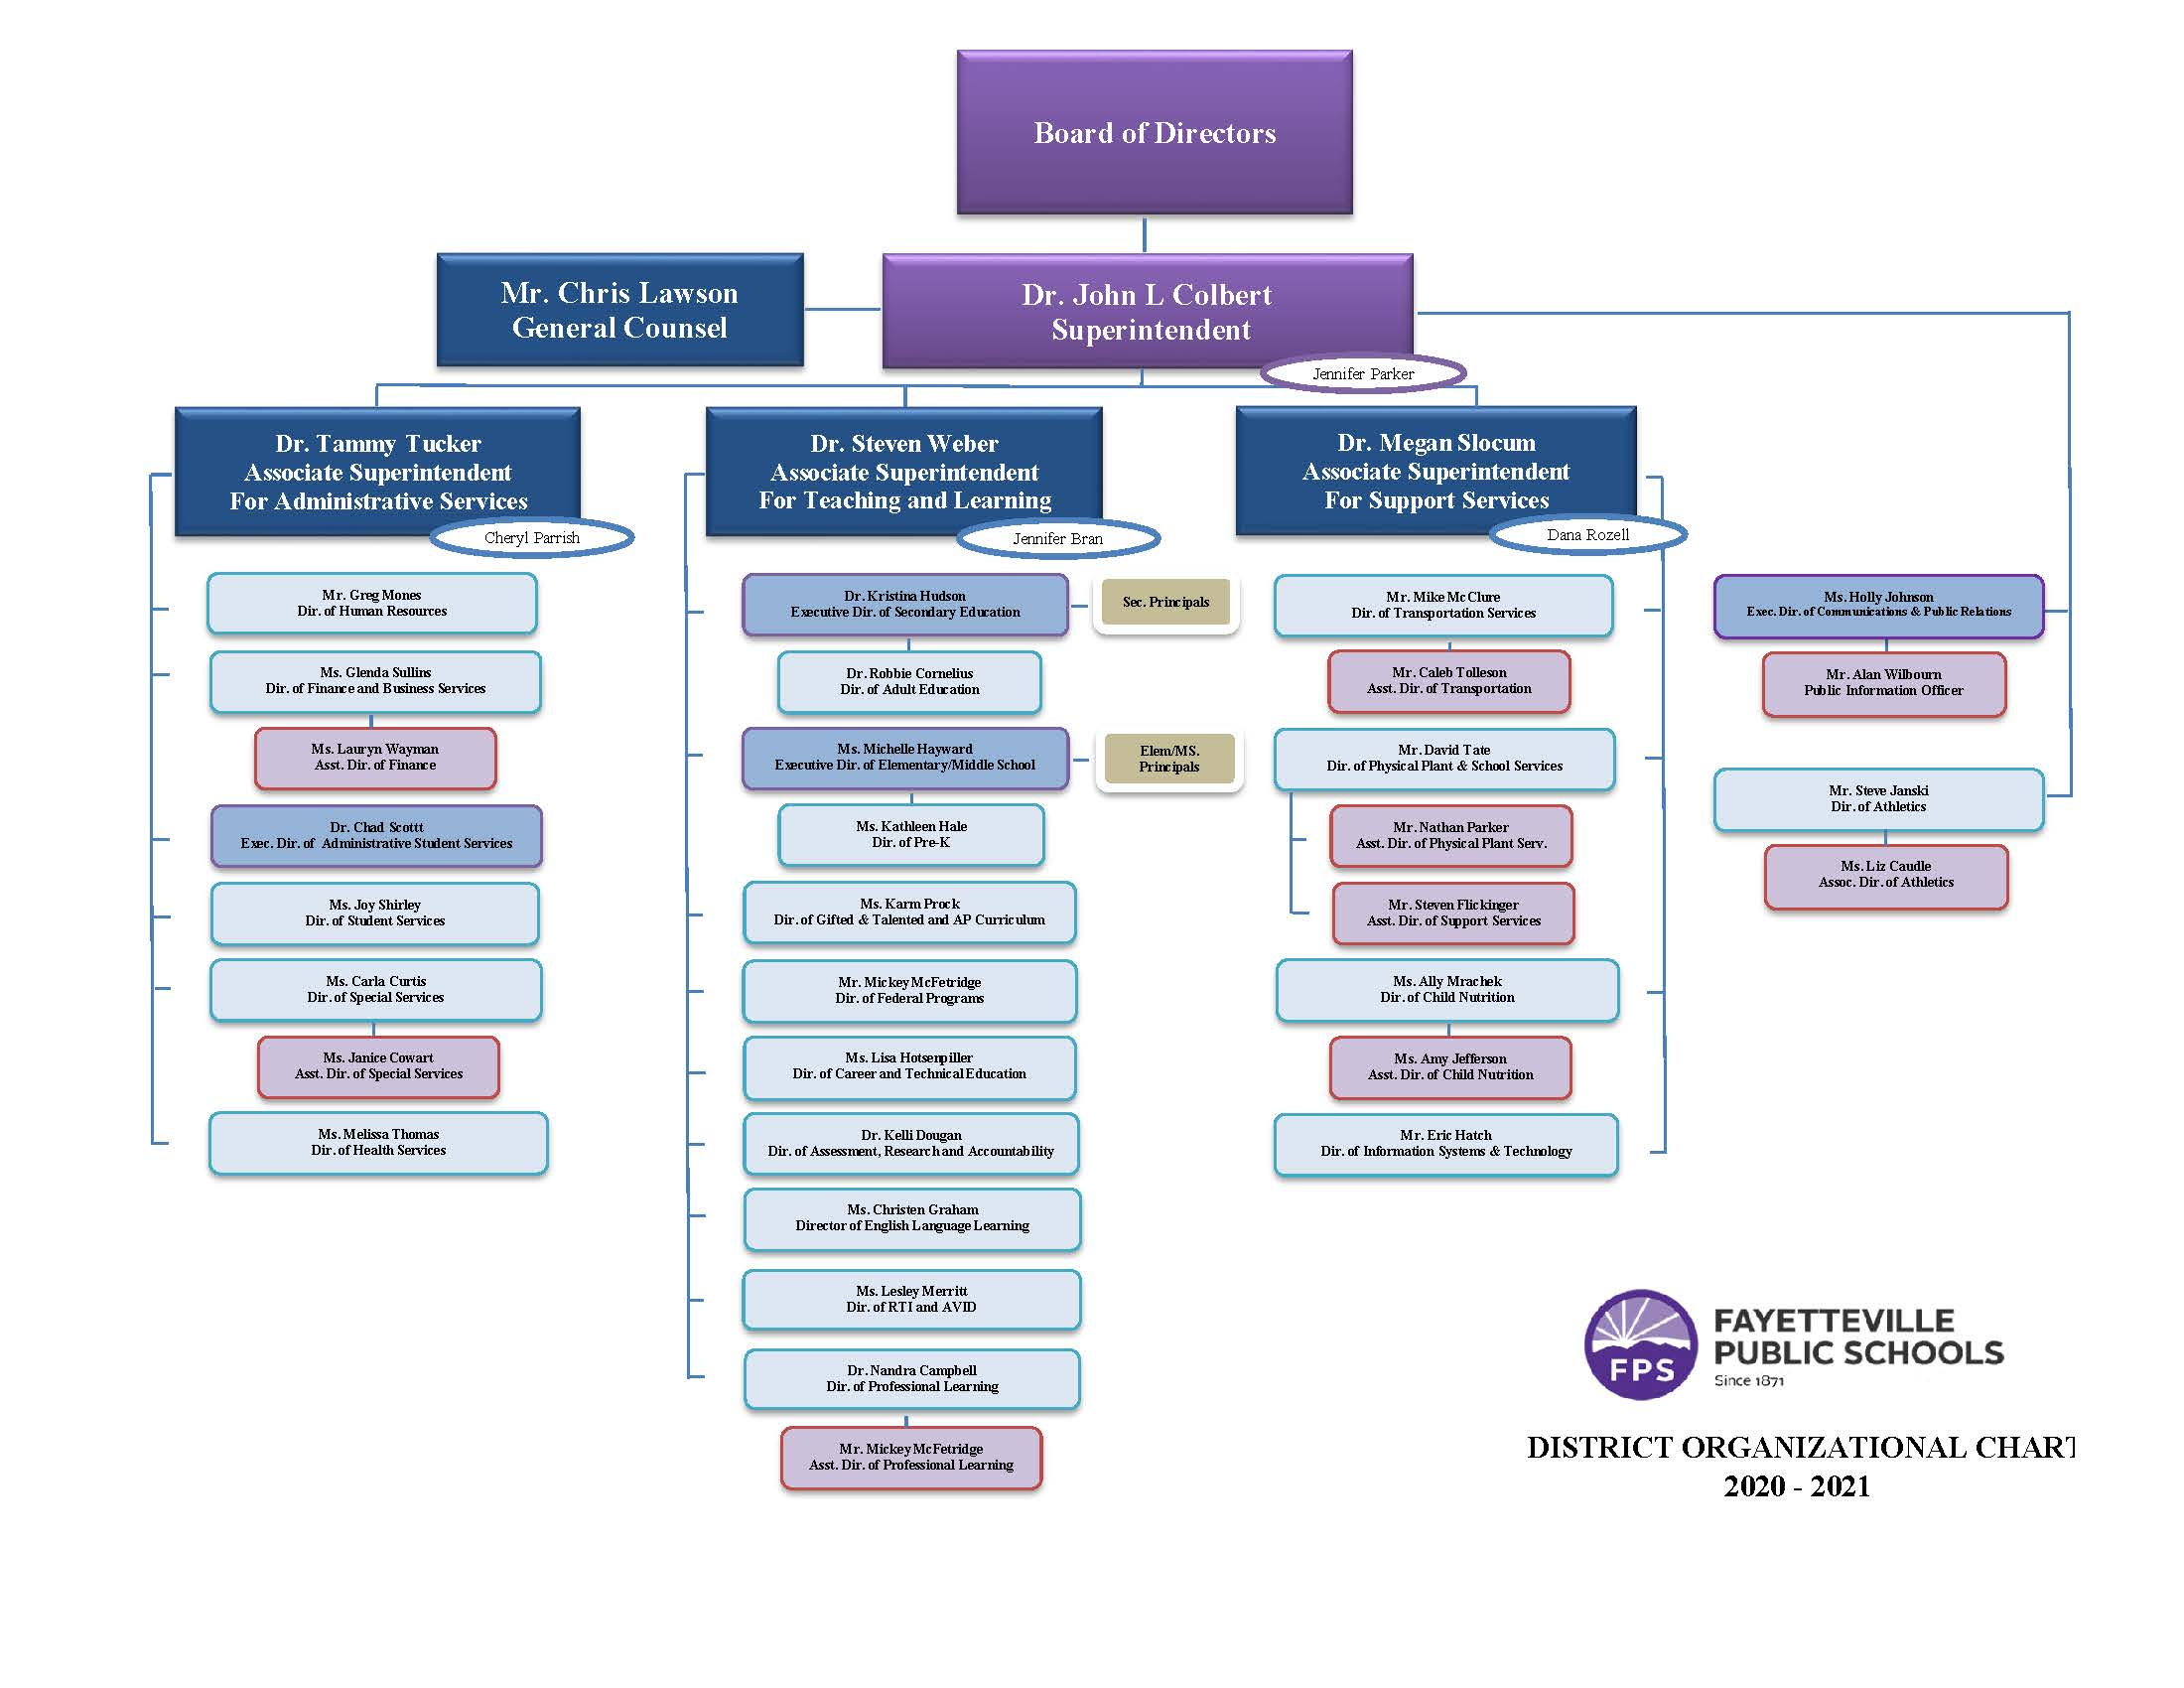 District Organizational Chart